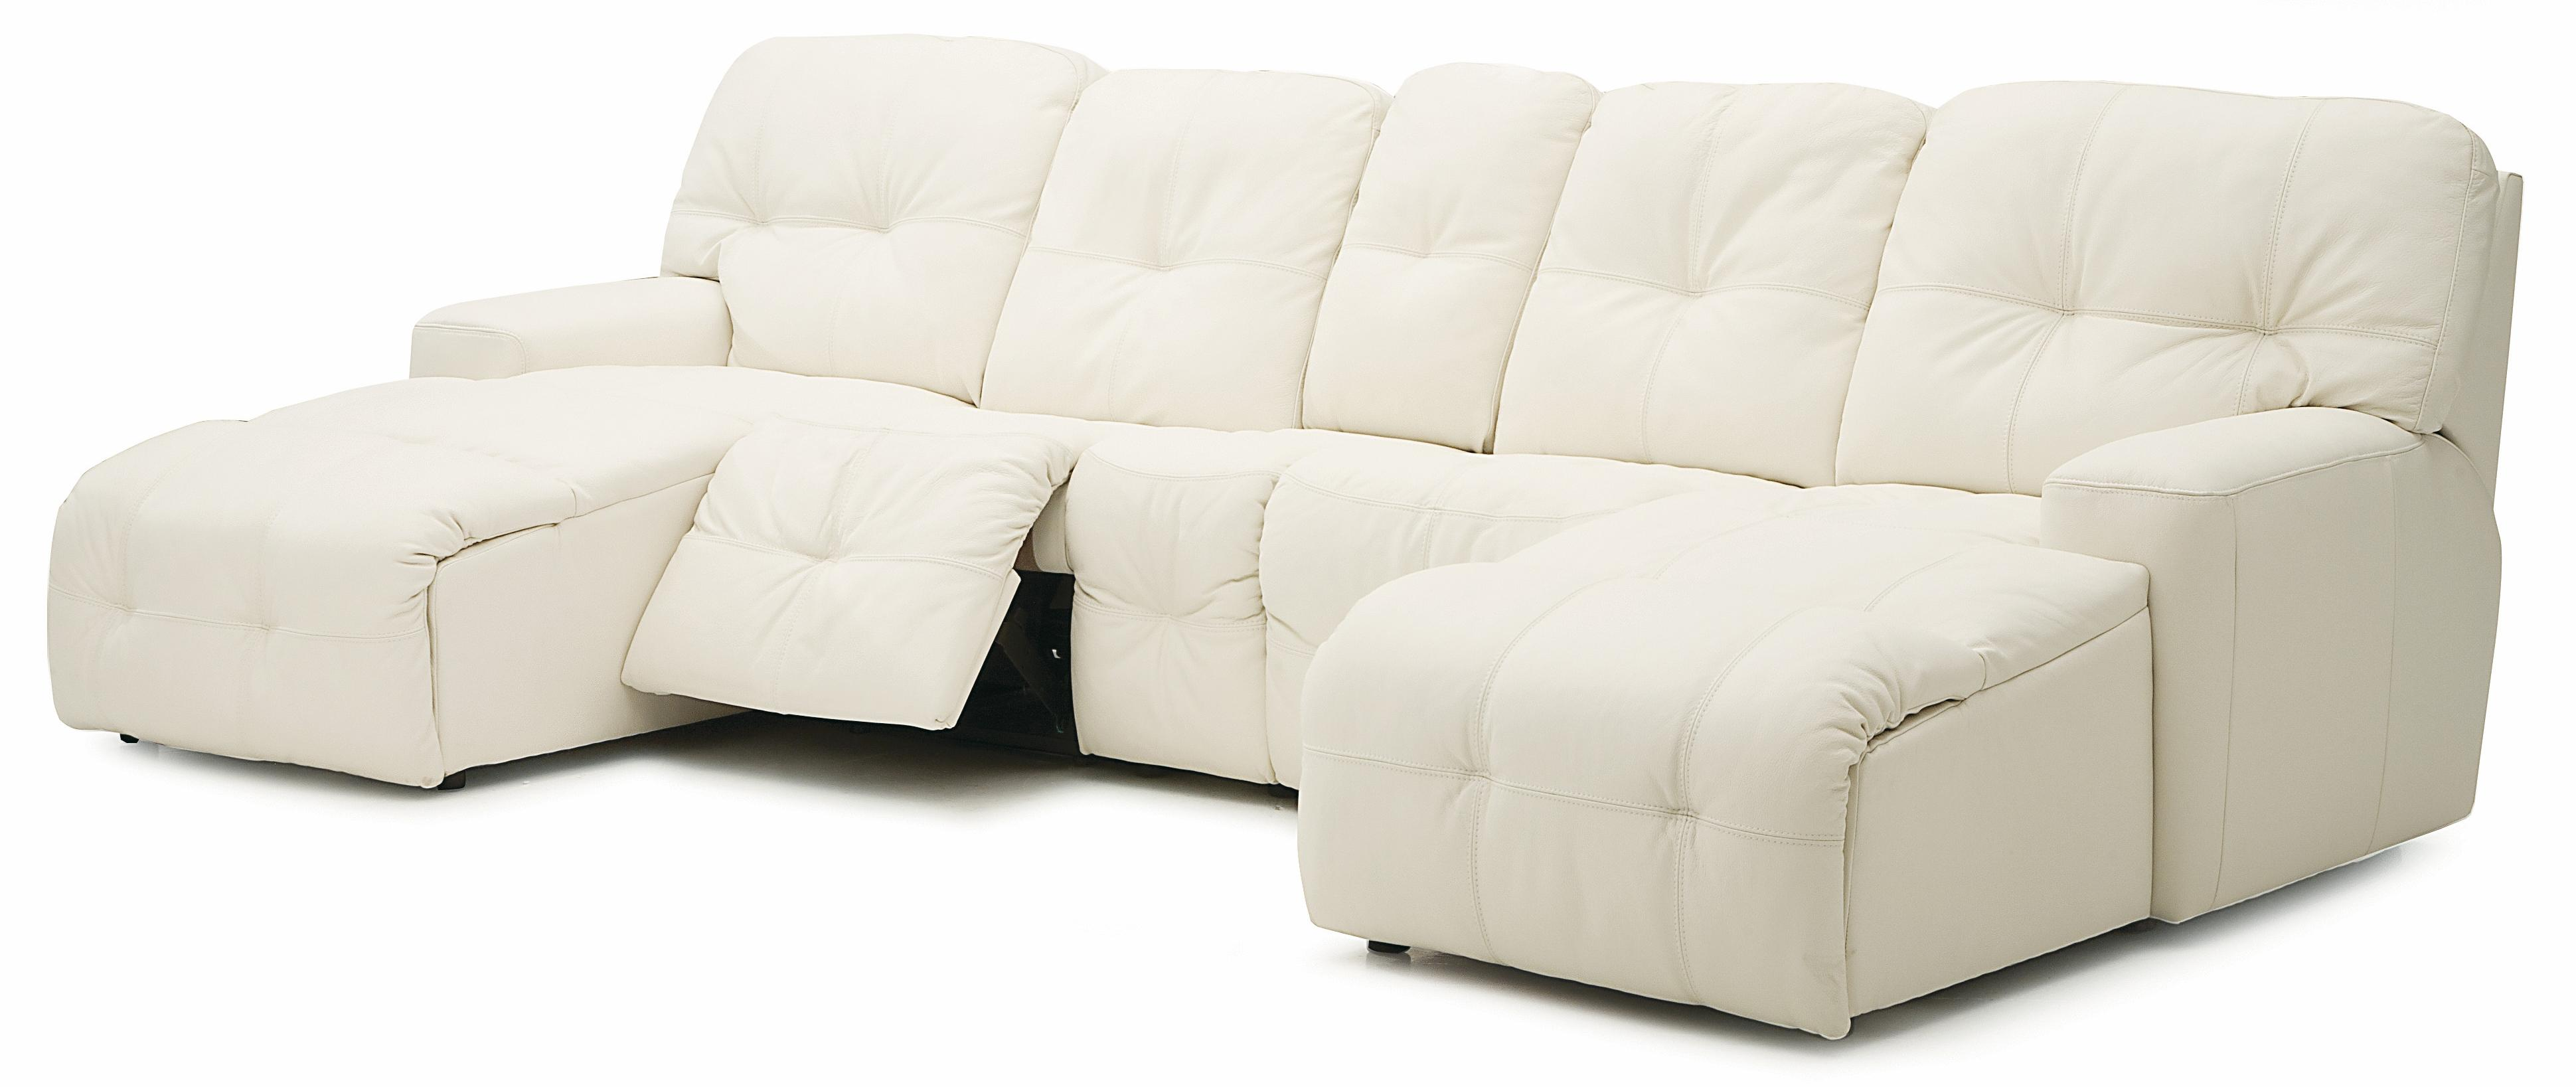 Palliser mystique transitional power reclining sectional for Chaise and recliner